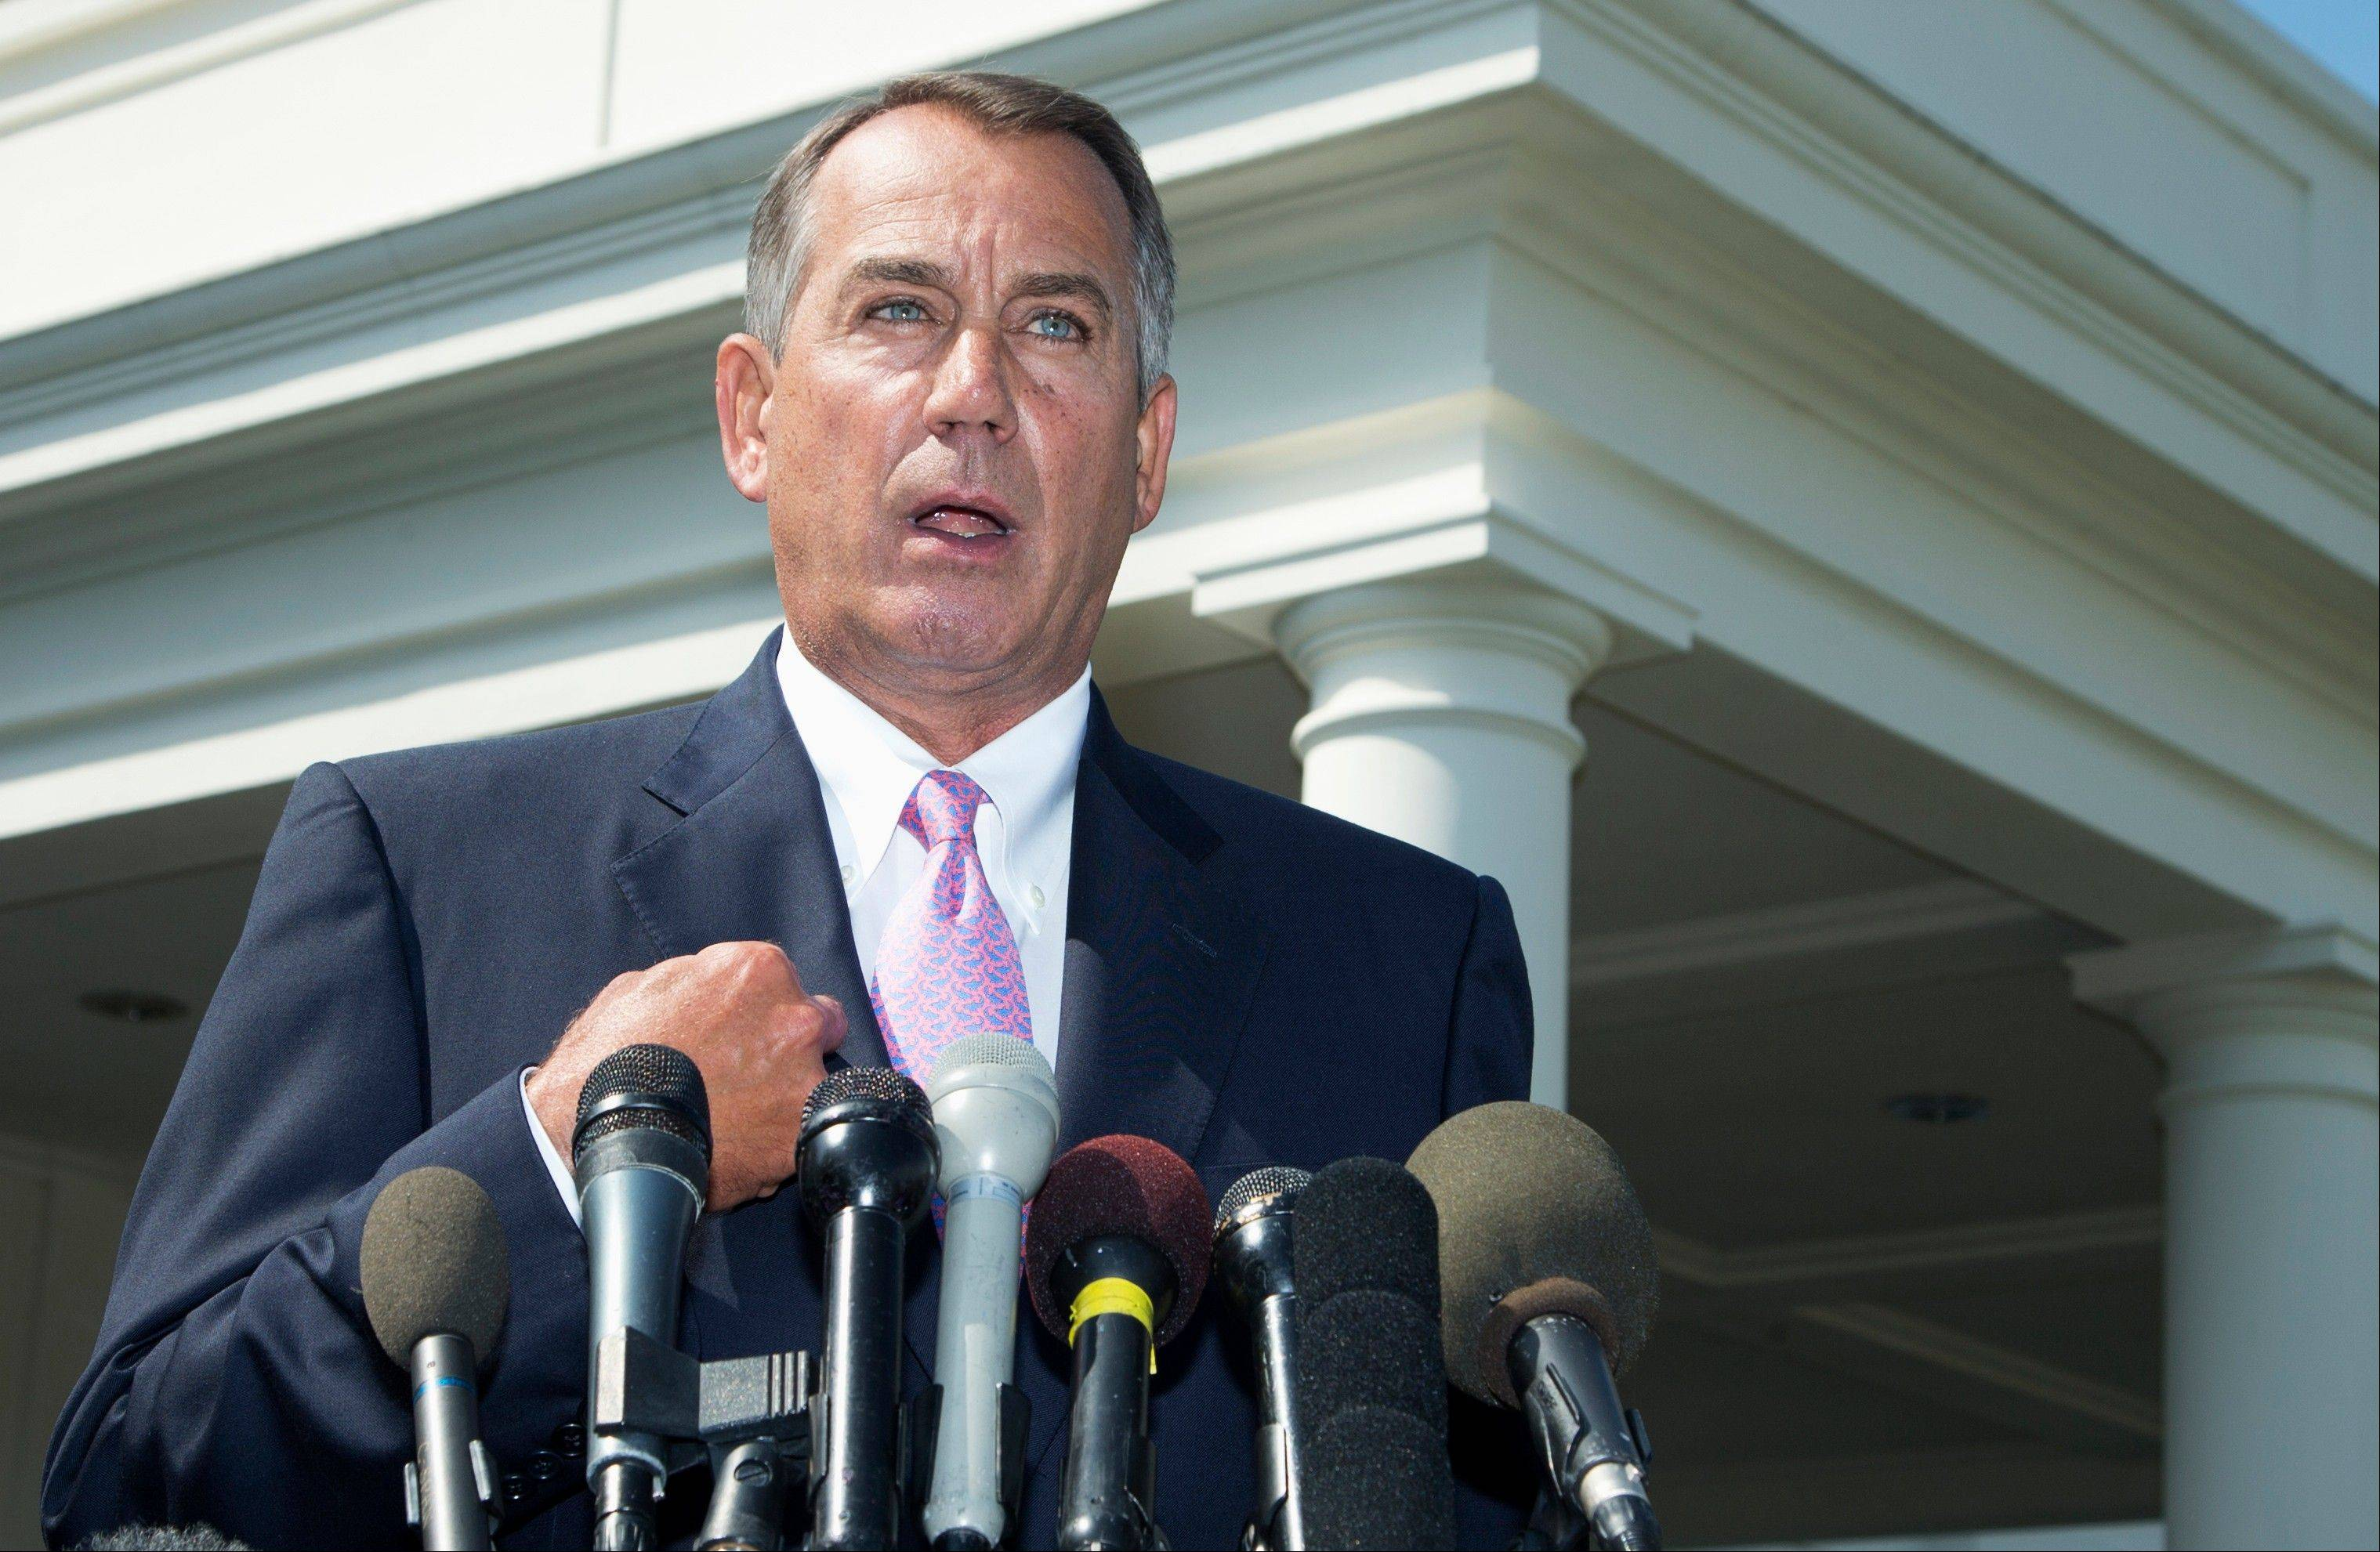 House Speaker John Boehner announced after meeting with President Barack Obama at the White House on Tuesday that he will support Obama's call for the U.S. to take action against Syria and said his Republican colleagues should support the president, too.